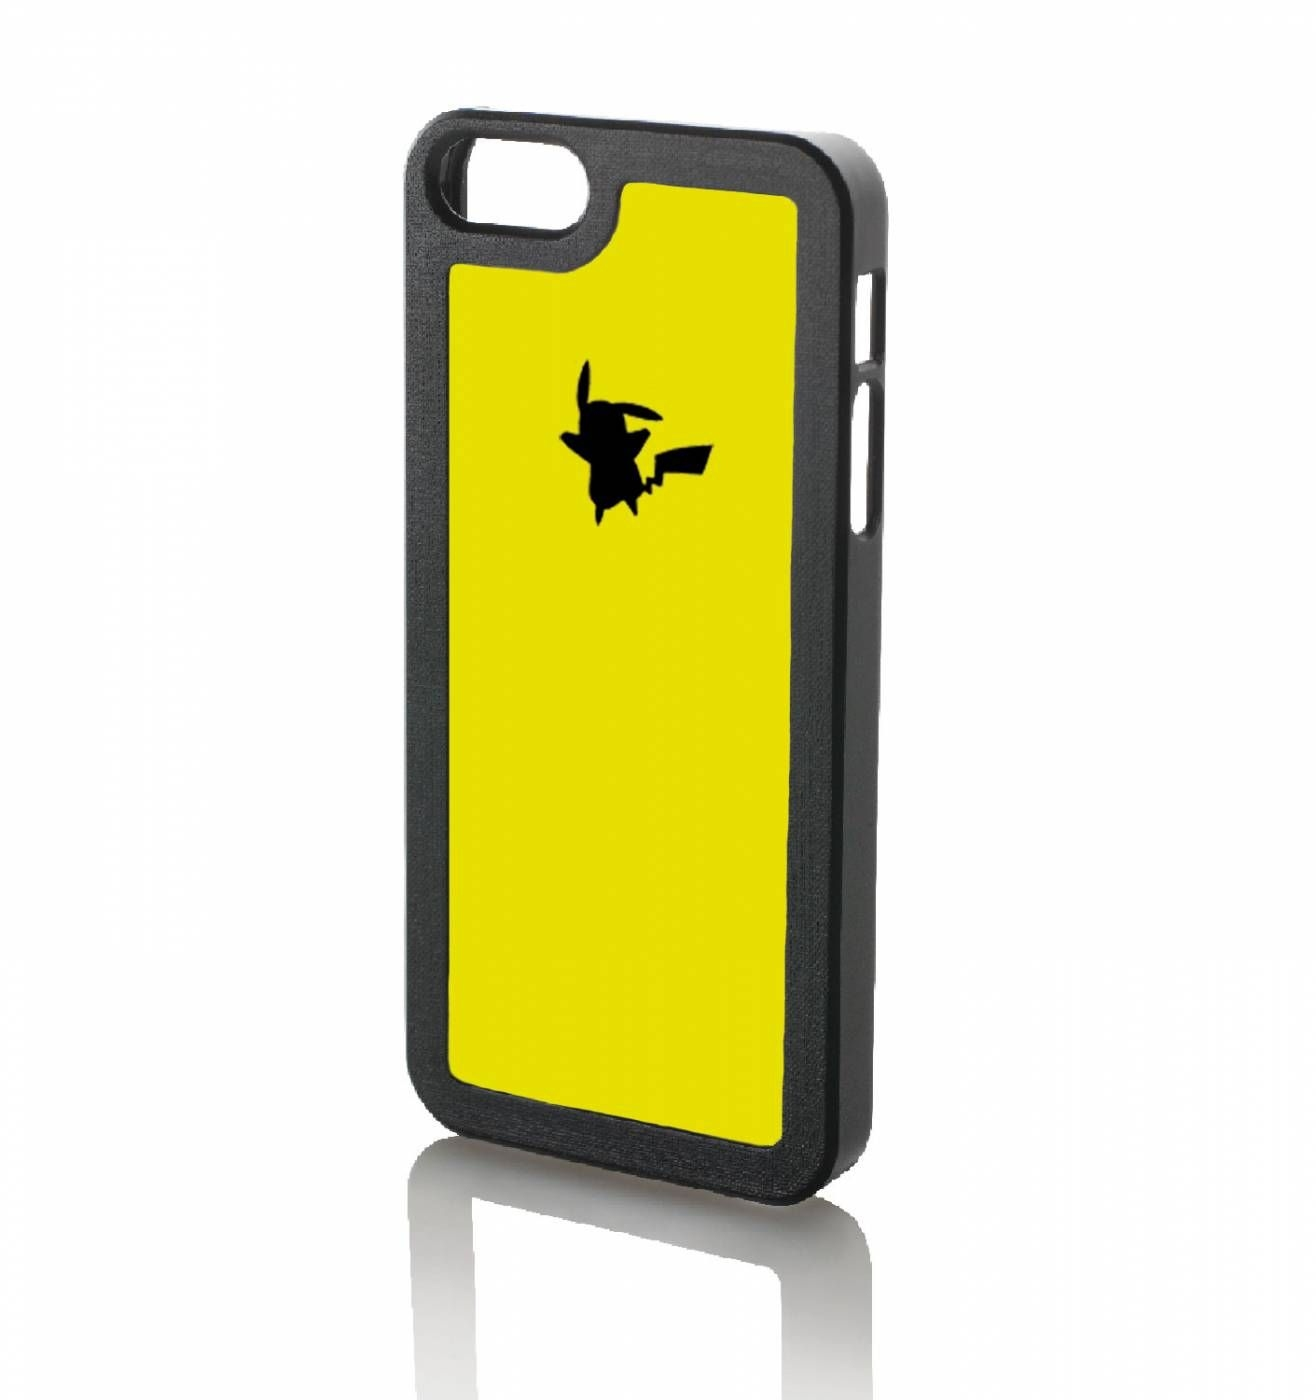 Pikachu Yellow - Apple iPhone 5 phone case